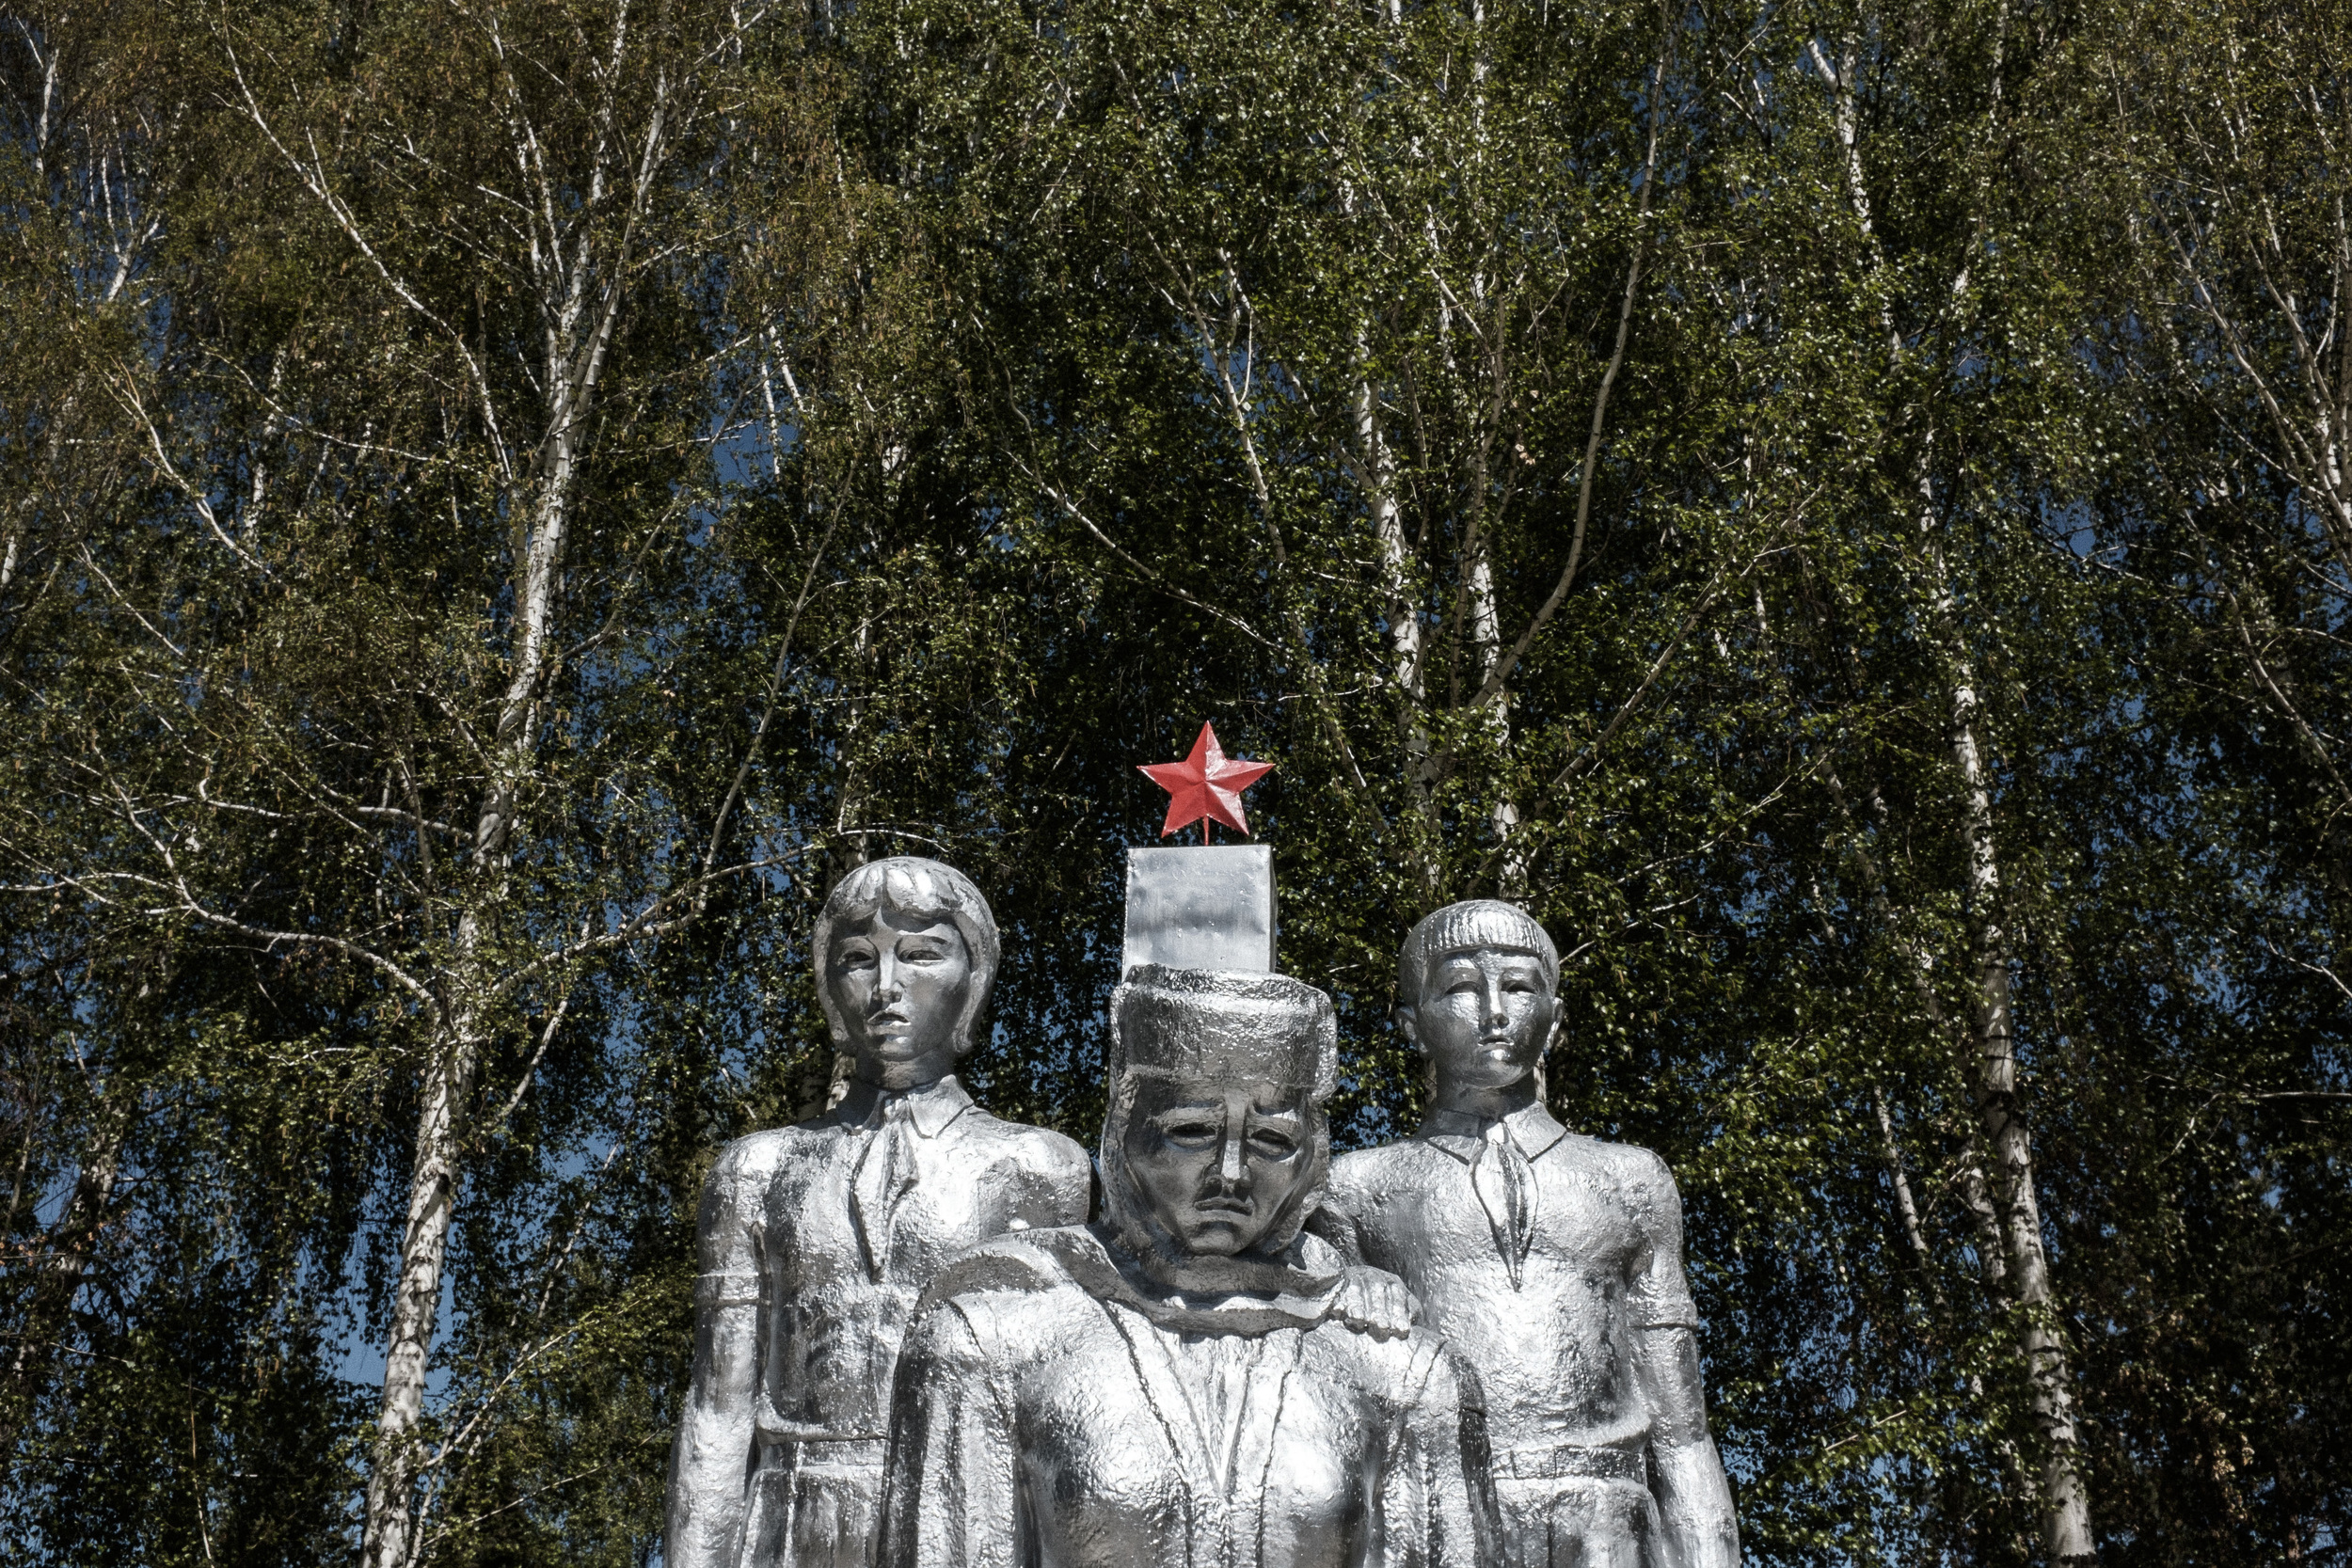 WWII monument in Jeti Öghüz village, Est-Kyrgyzstan. About 365,000 Kyrgyzstanis were mobilized during World War II, according to official figures; 115,000 of them died. Jeti Öghüz, May 4, 2015